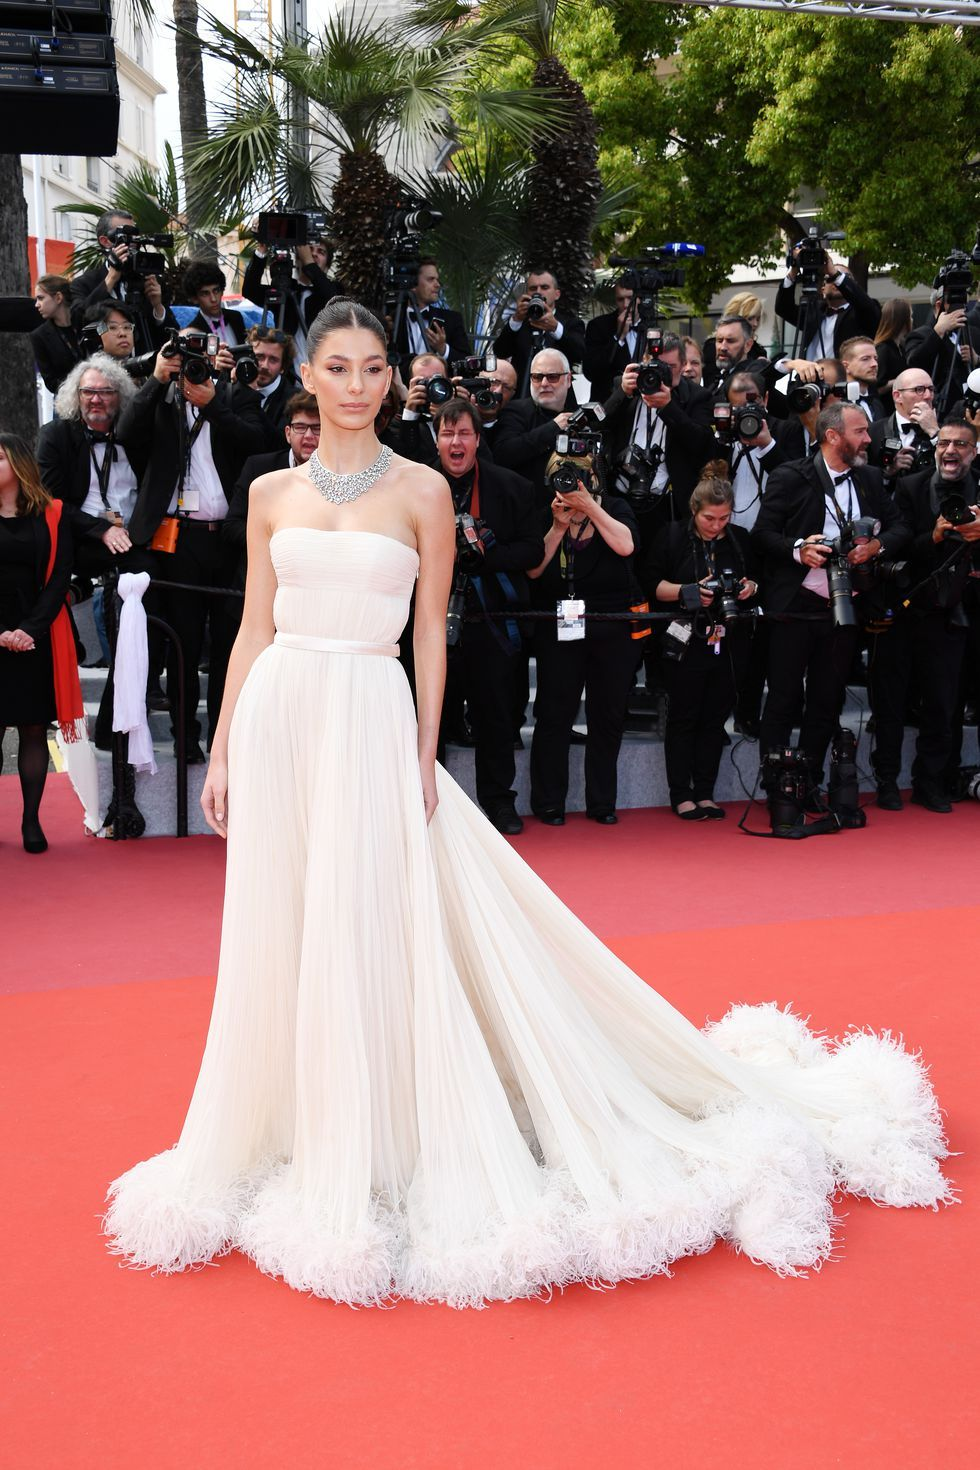 The Most Glamorous Looks From Cannes Film Festival